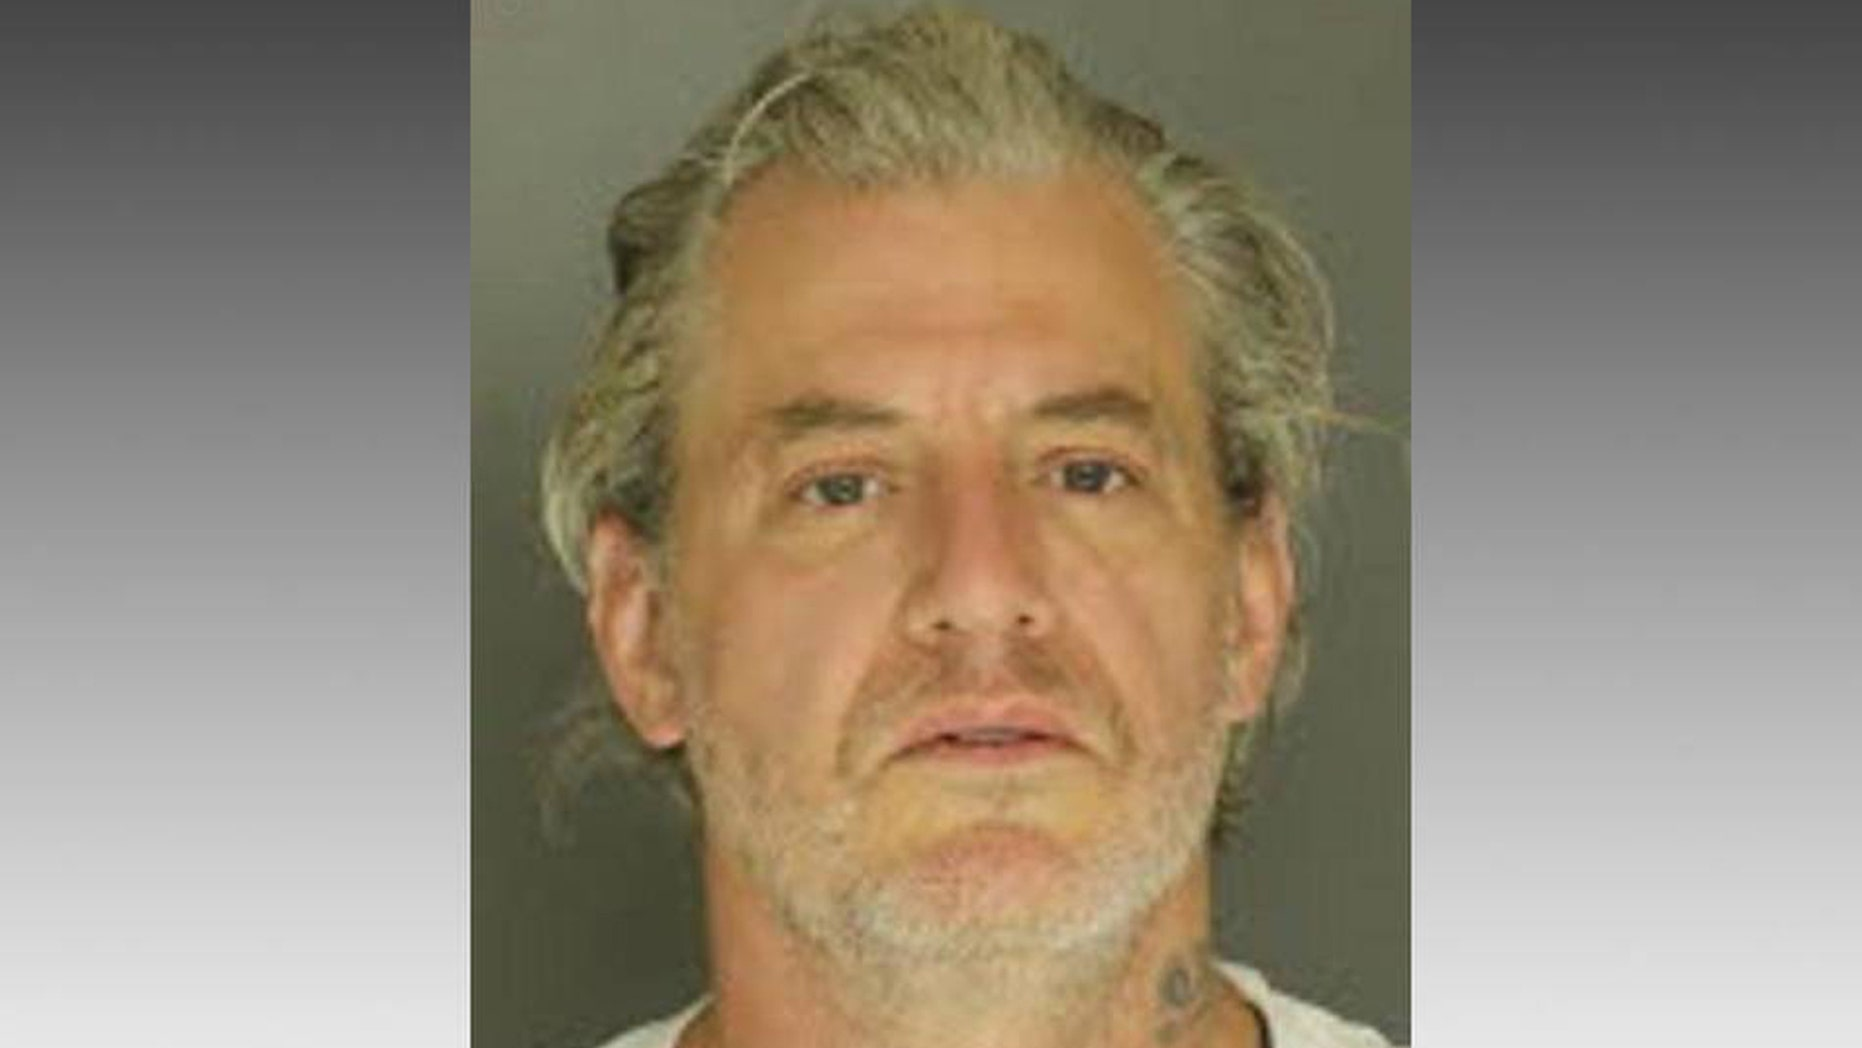 Steckbeck is accused of robbing the bank - and tricking a local man into being his wheel man.